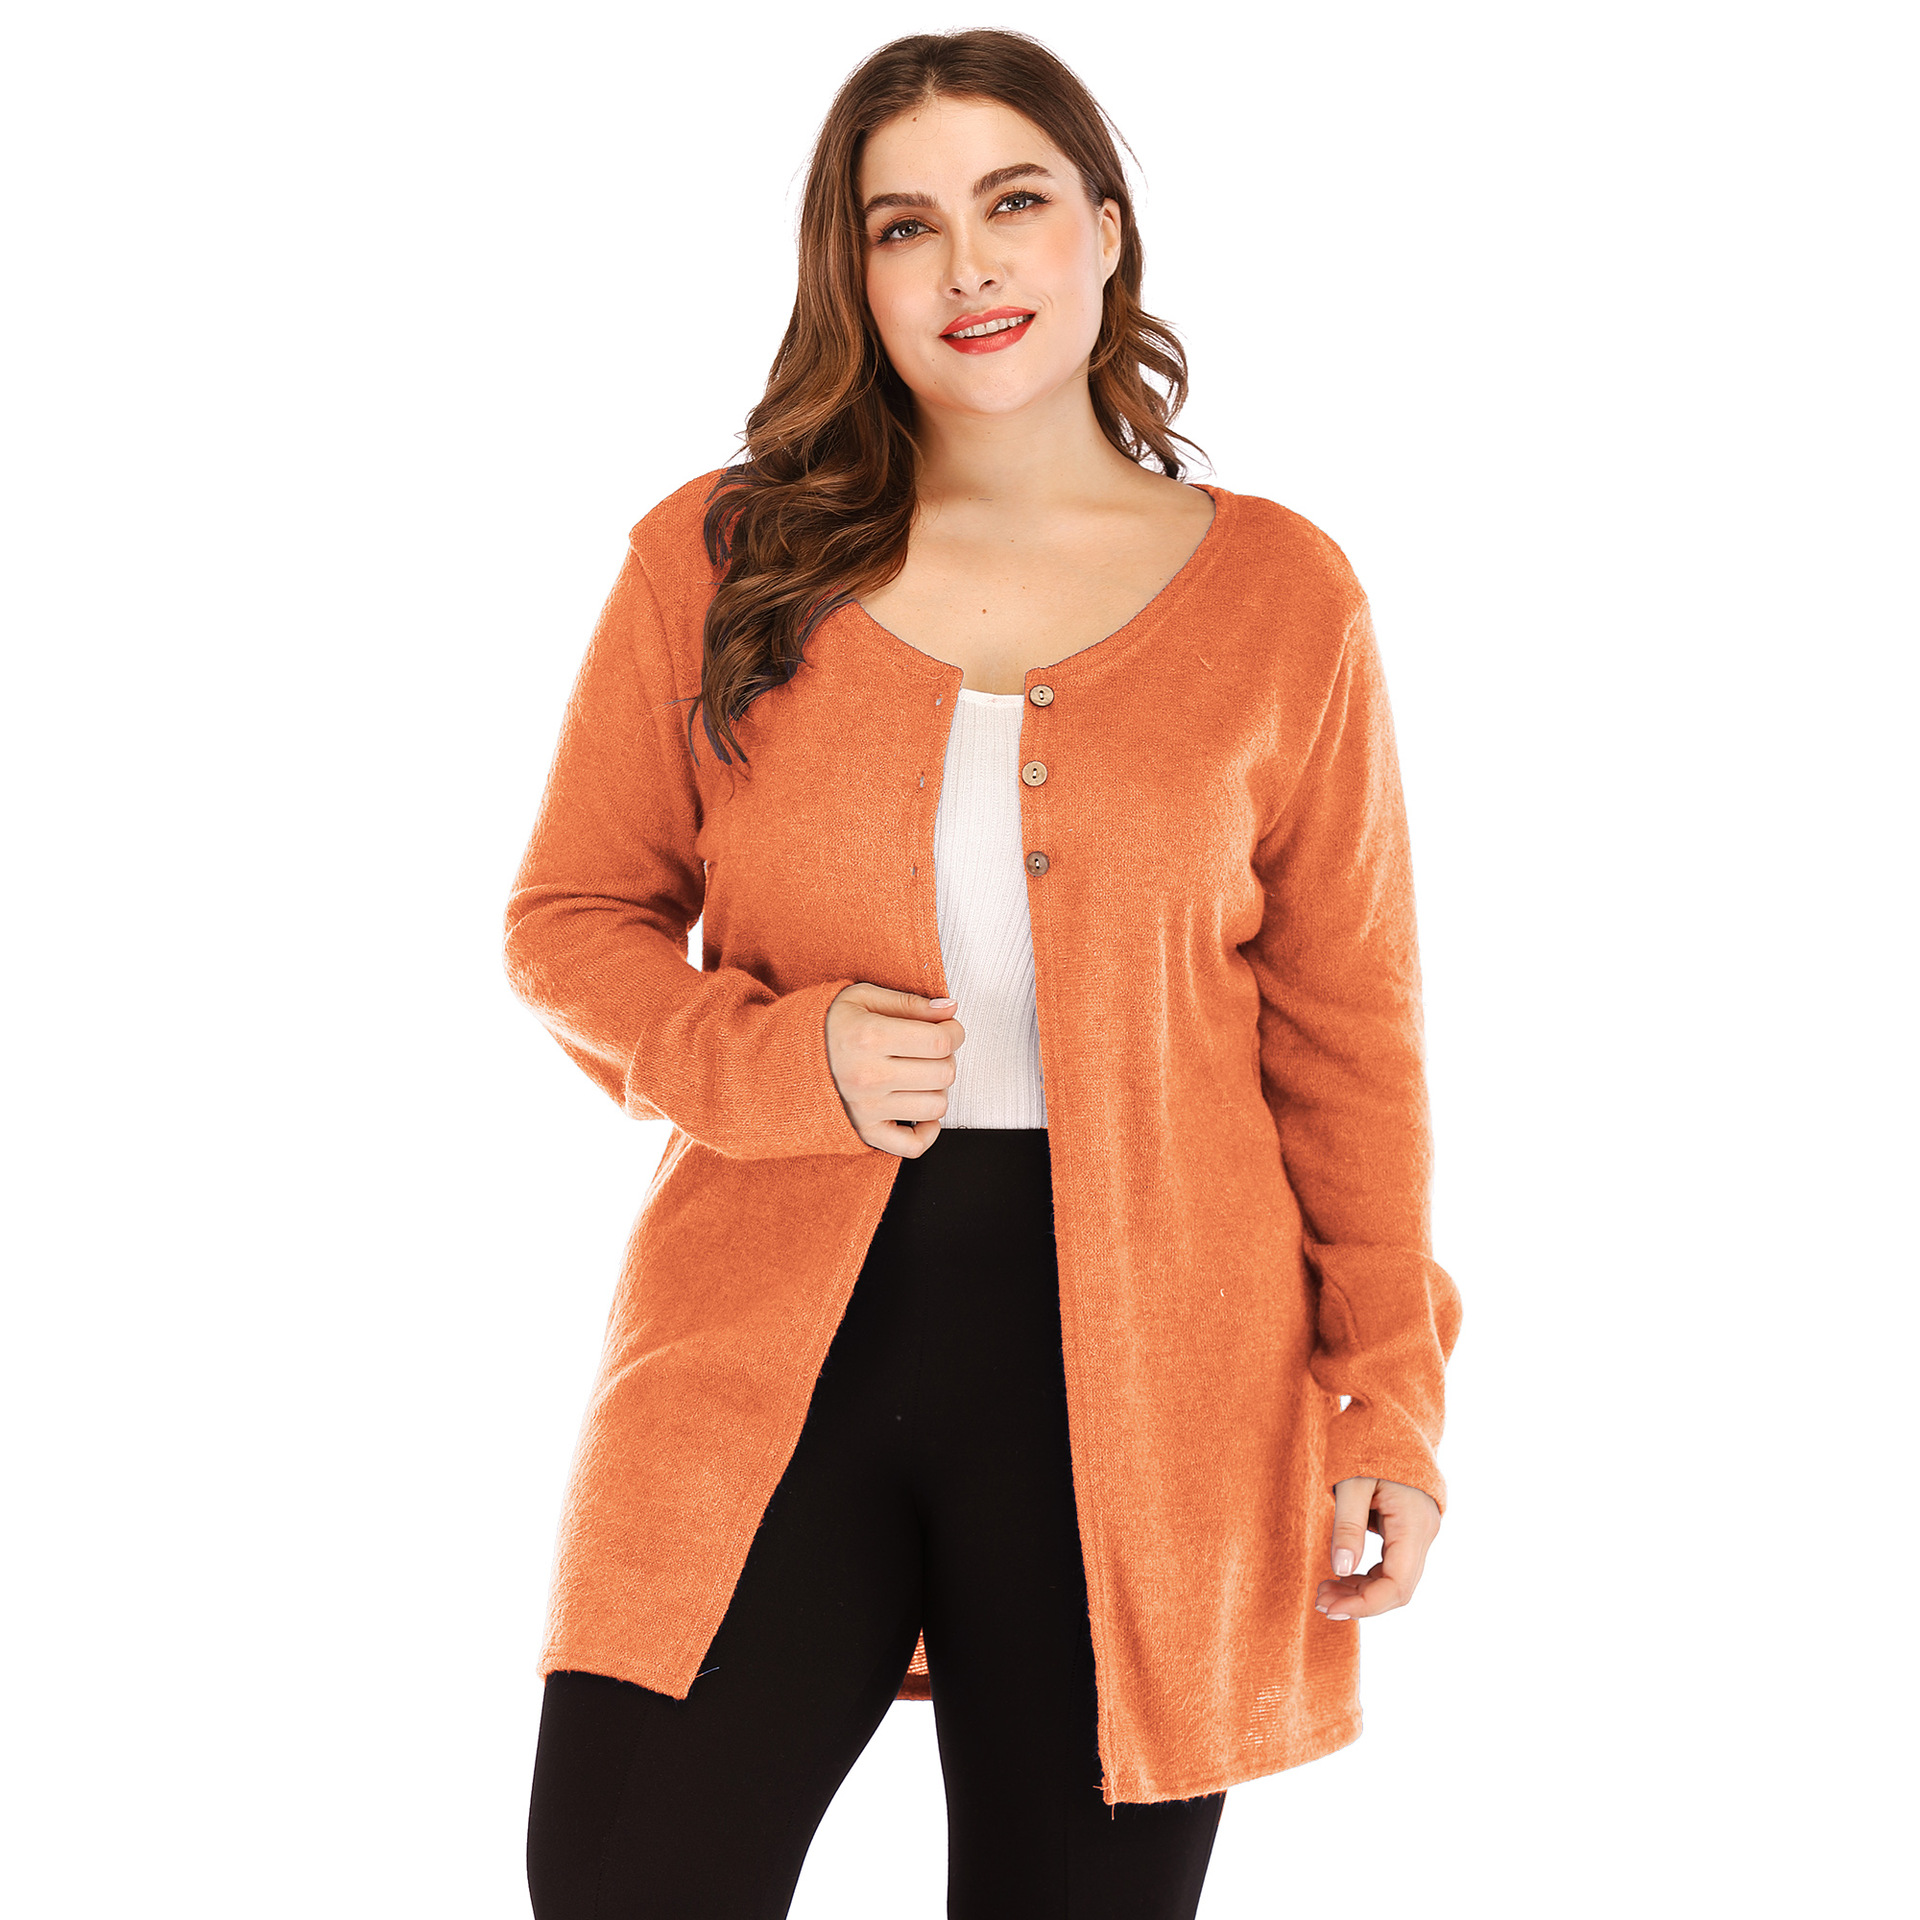 02a9ed6ec97 Women Cardigan Coat Autumn Long Sleeve Button Casual Basic Plus Size Jacket  Orange on Luulla